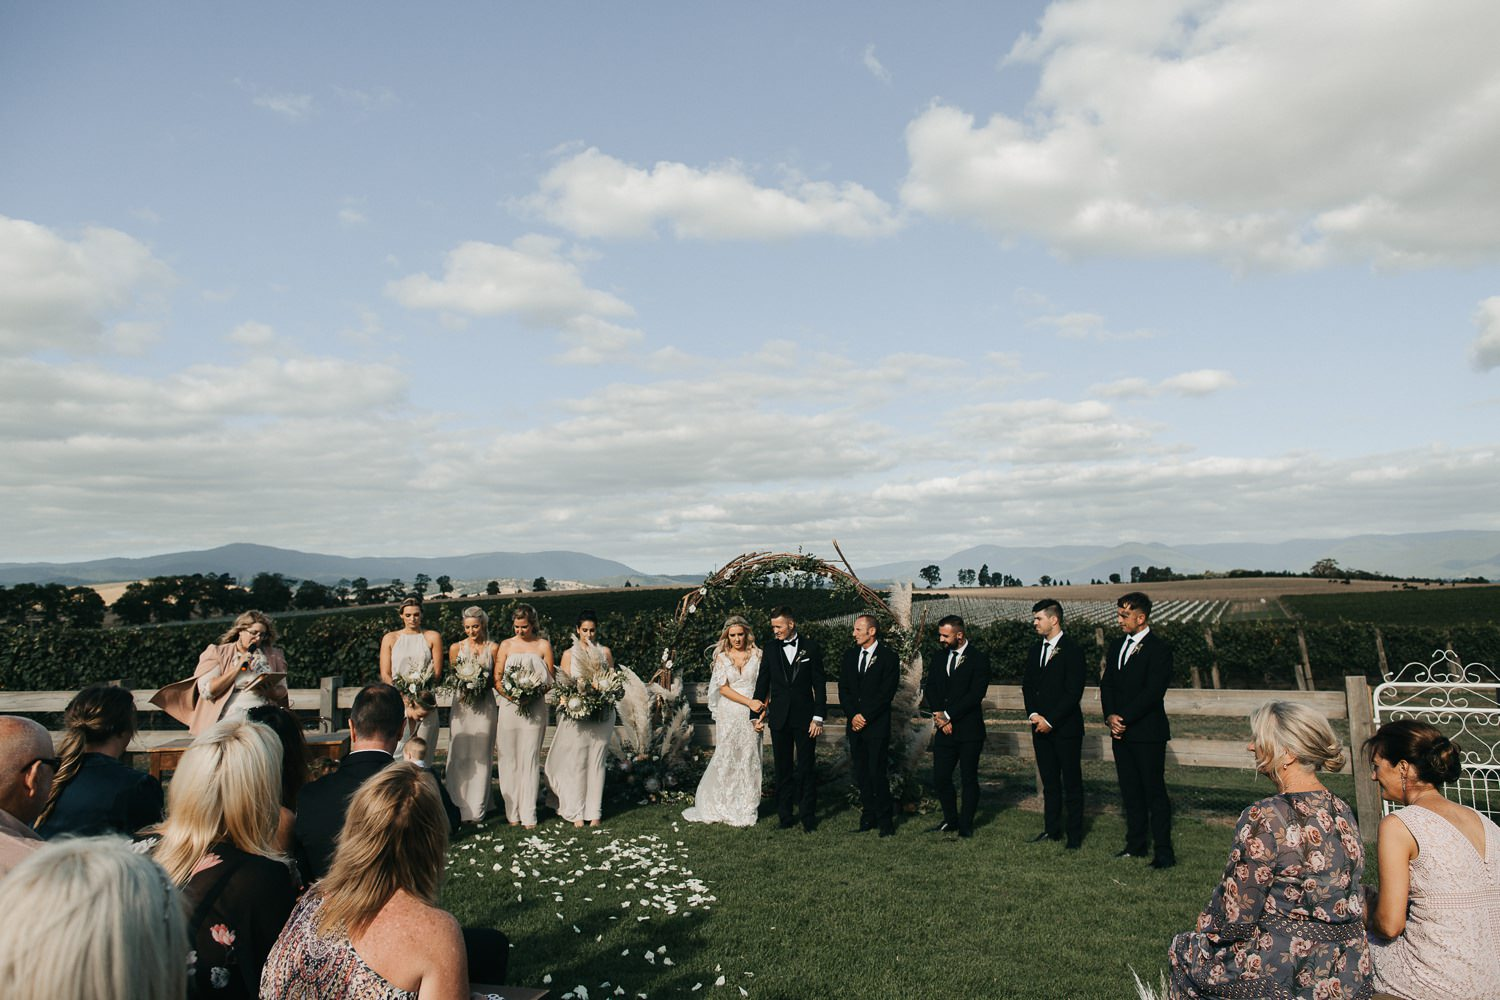 zonzo-estate-yarra-valley-wedding-photographer_0059.jpg